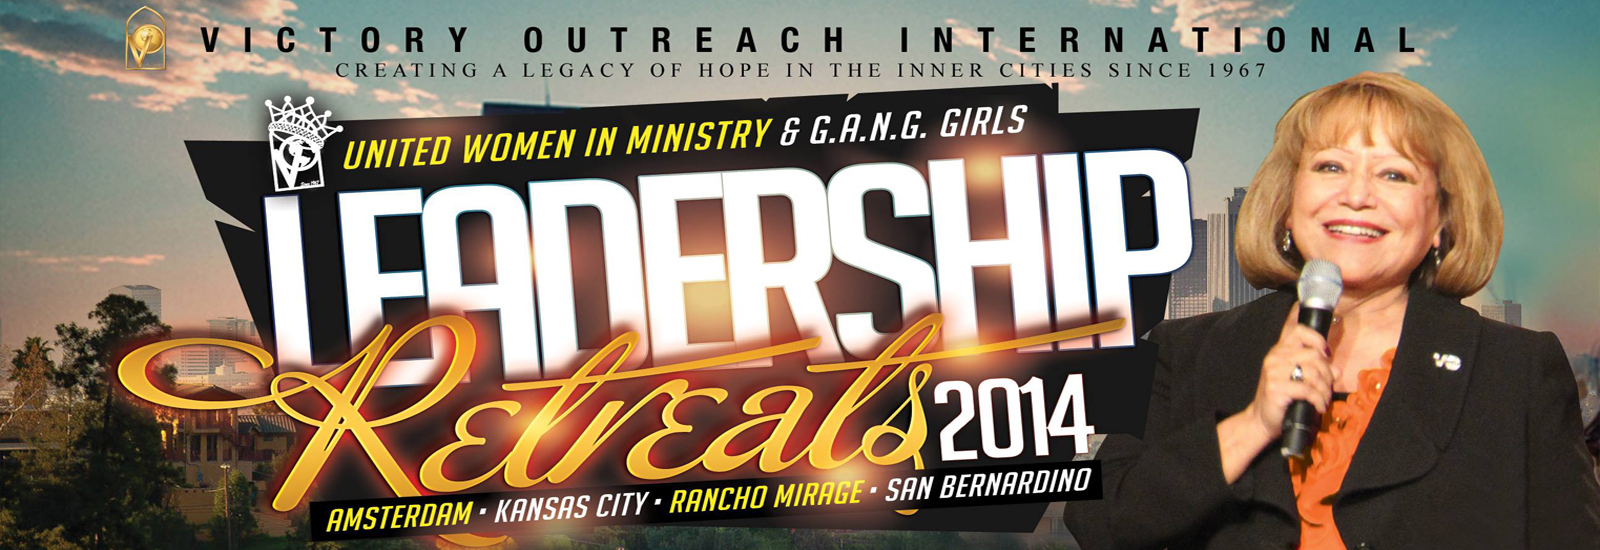 Victory Outreach Whittier